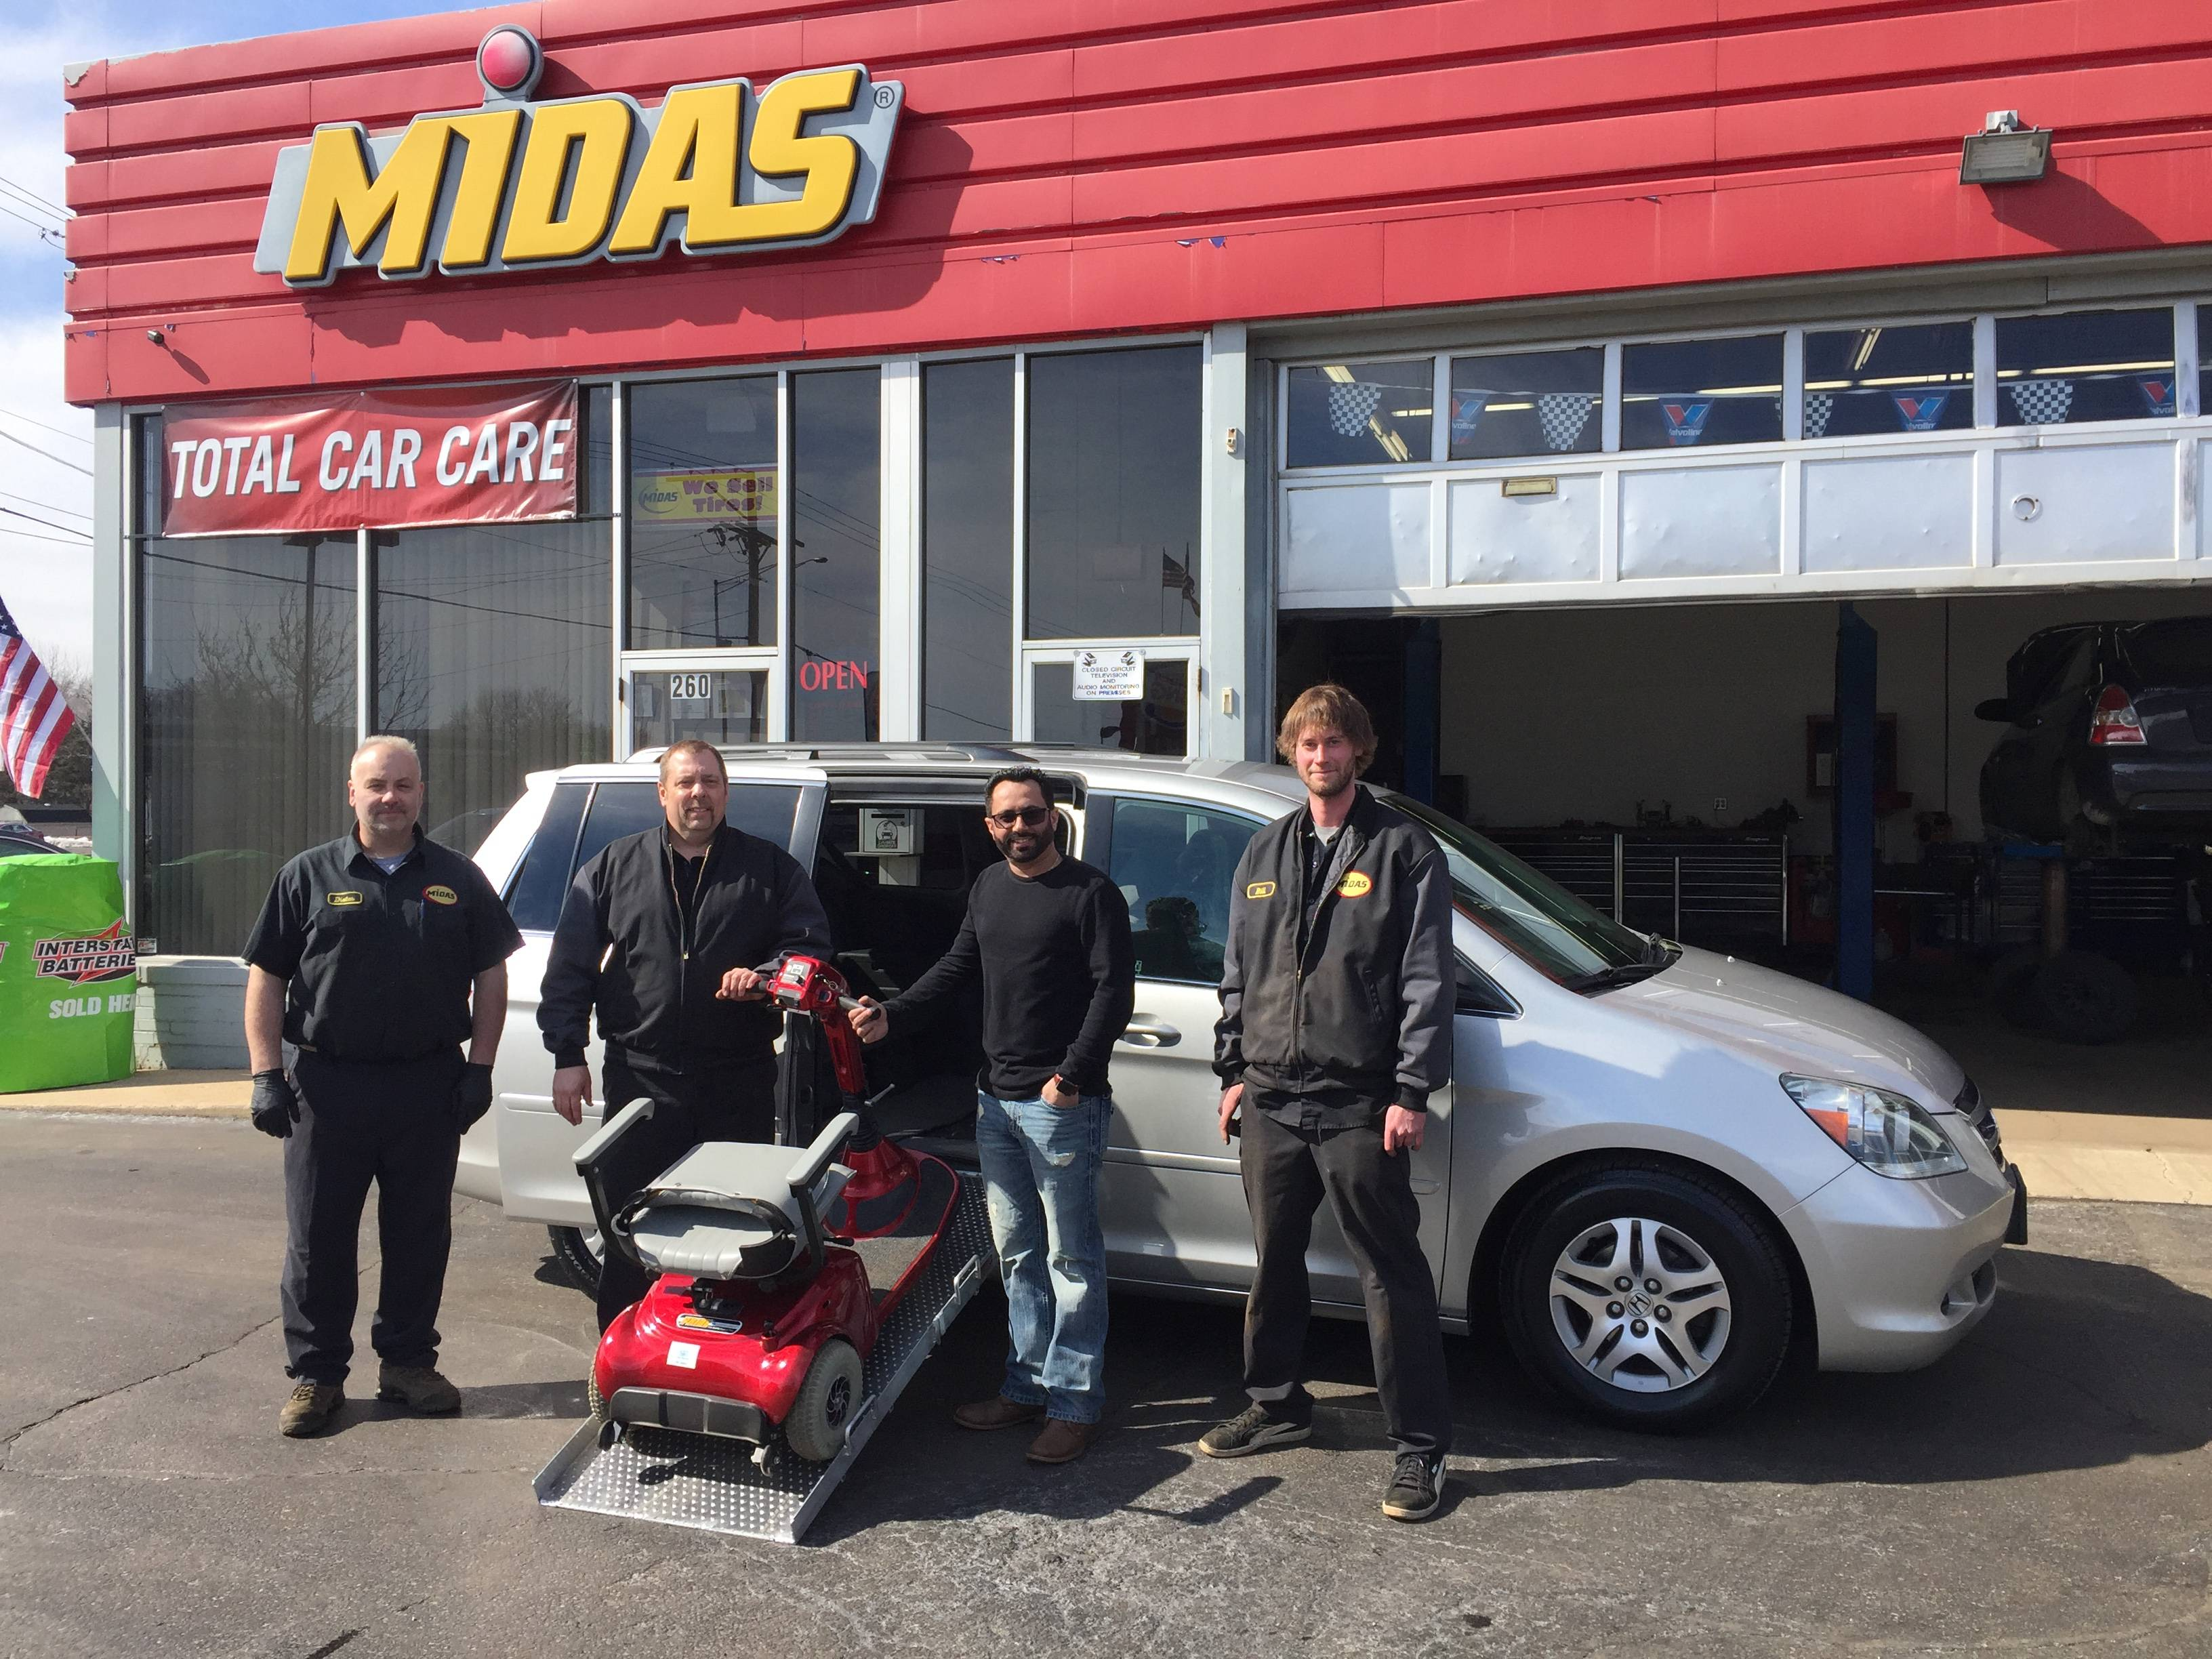 Midas Crystal Lake provided the free labor to install new tires, brakes, drivetrain and suspension parts for Henry Owens' van. Franchise owner Sam Khaira, second from right, and his crew also installed a wheelchair ramp so Owens can get in and out easily.